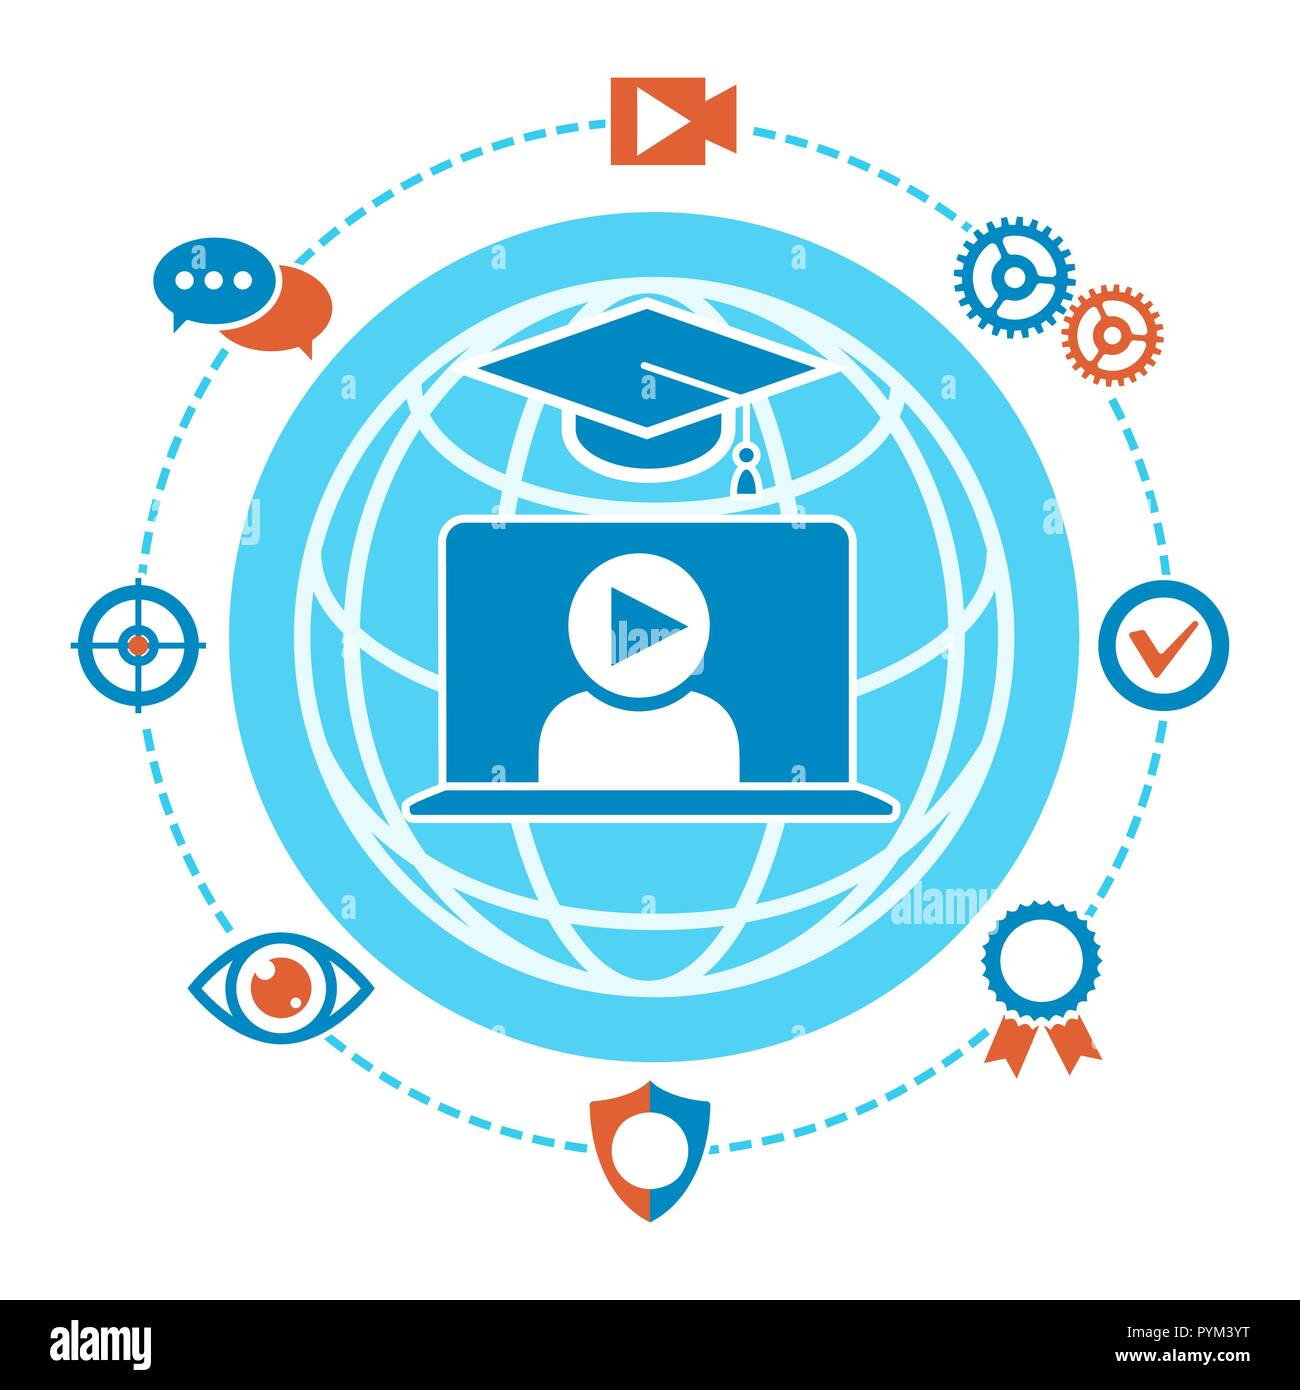 Webinar label. Webcasts and webinars livestream training and coach course recording technology vector emblem - Stock Image